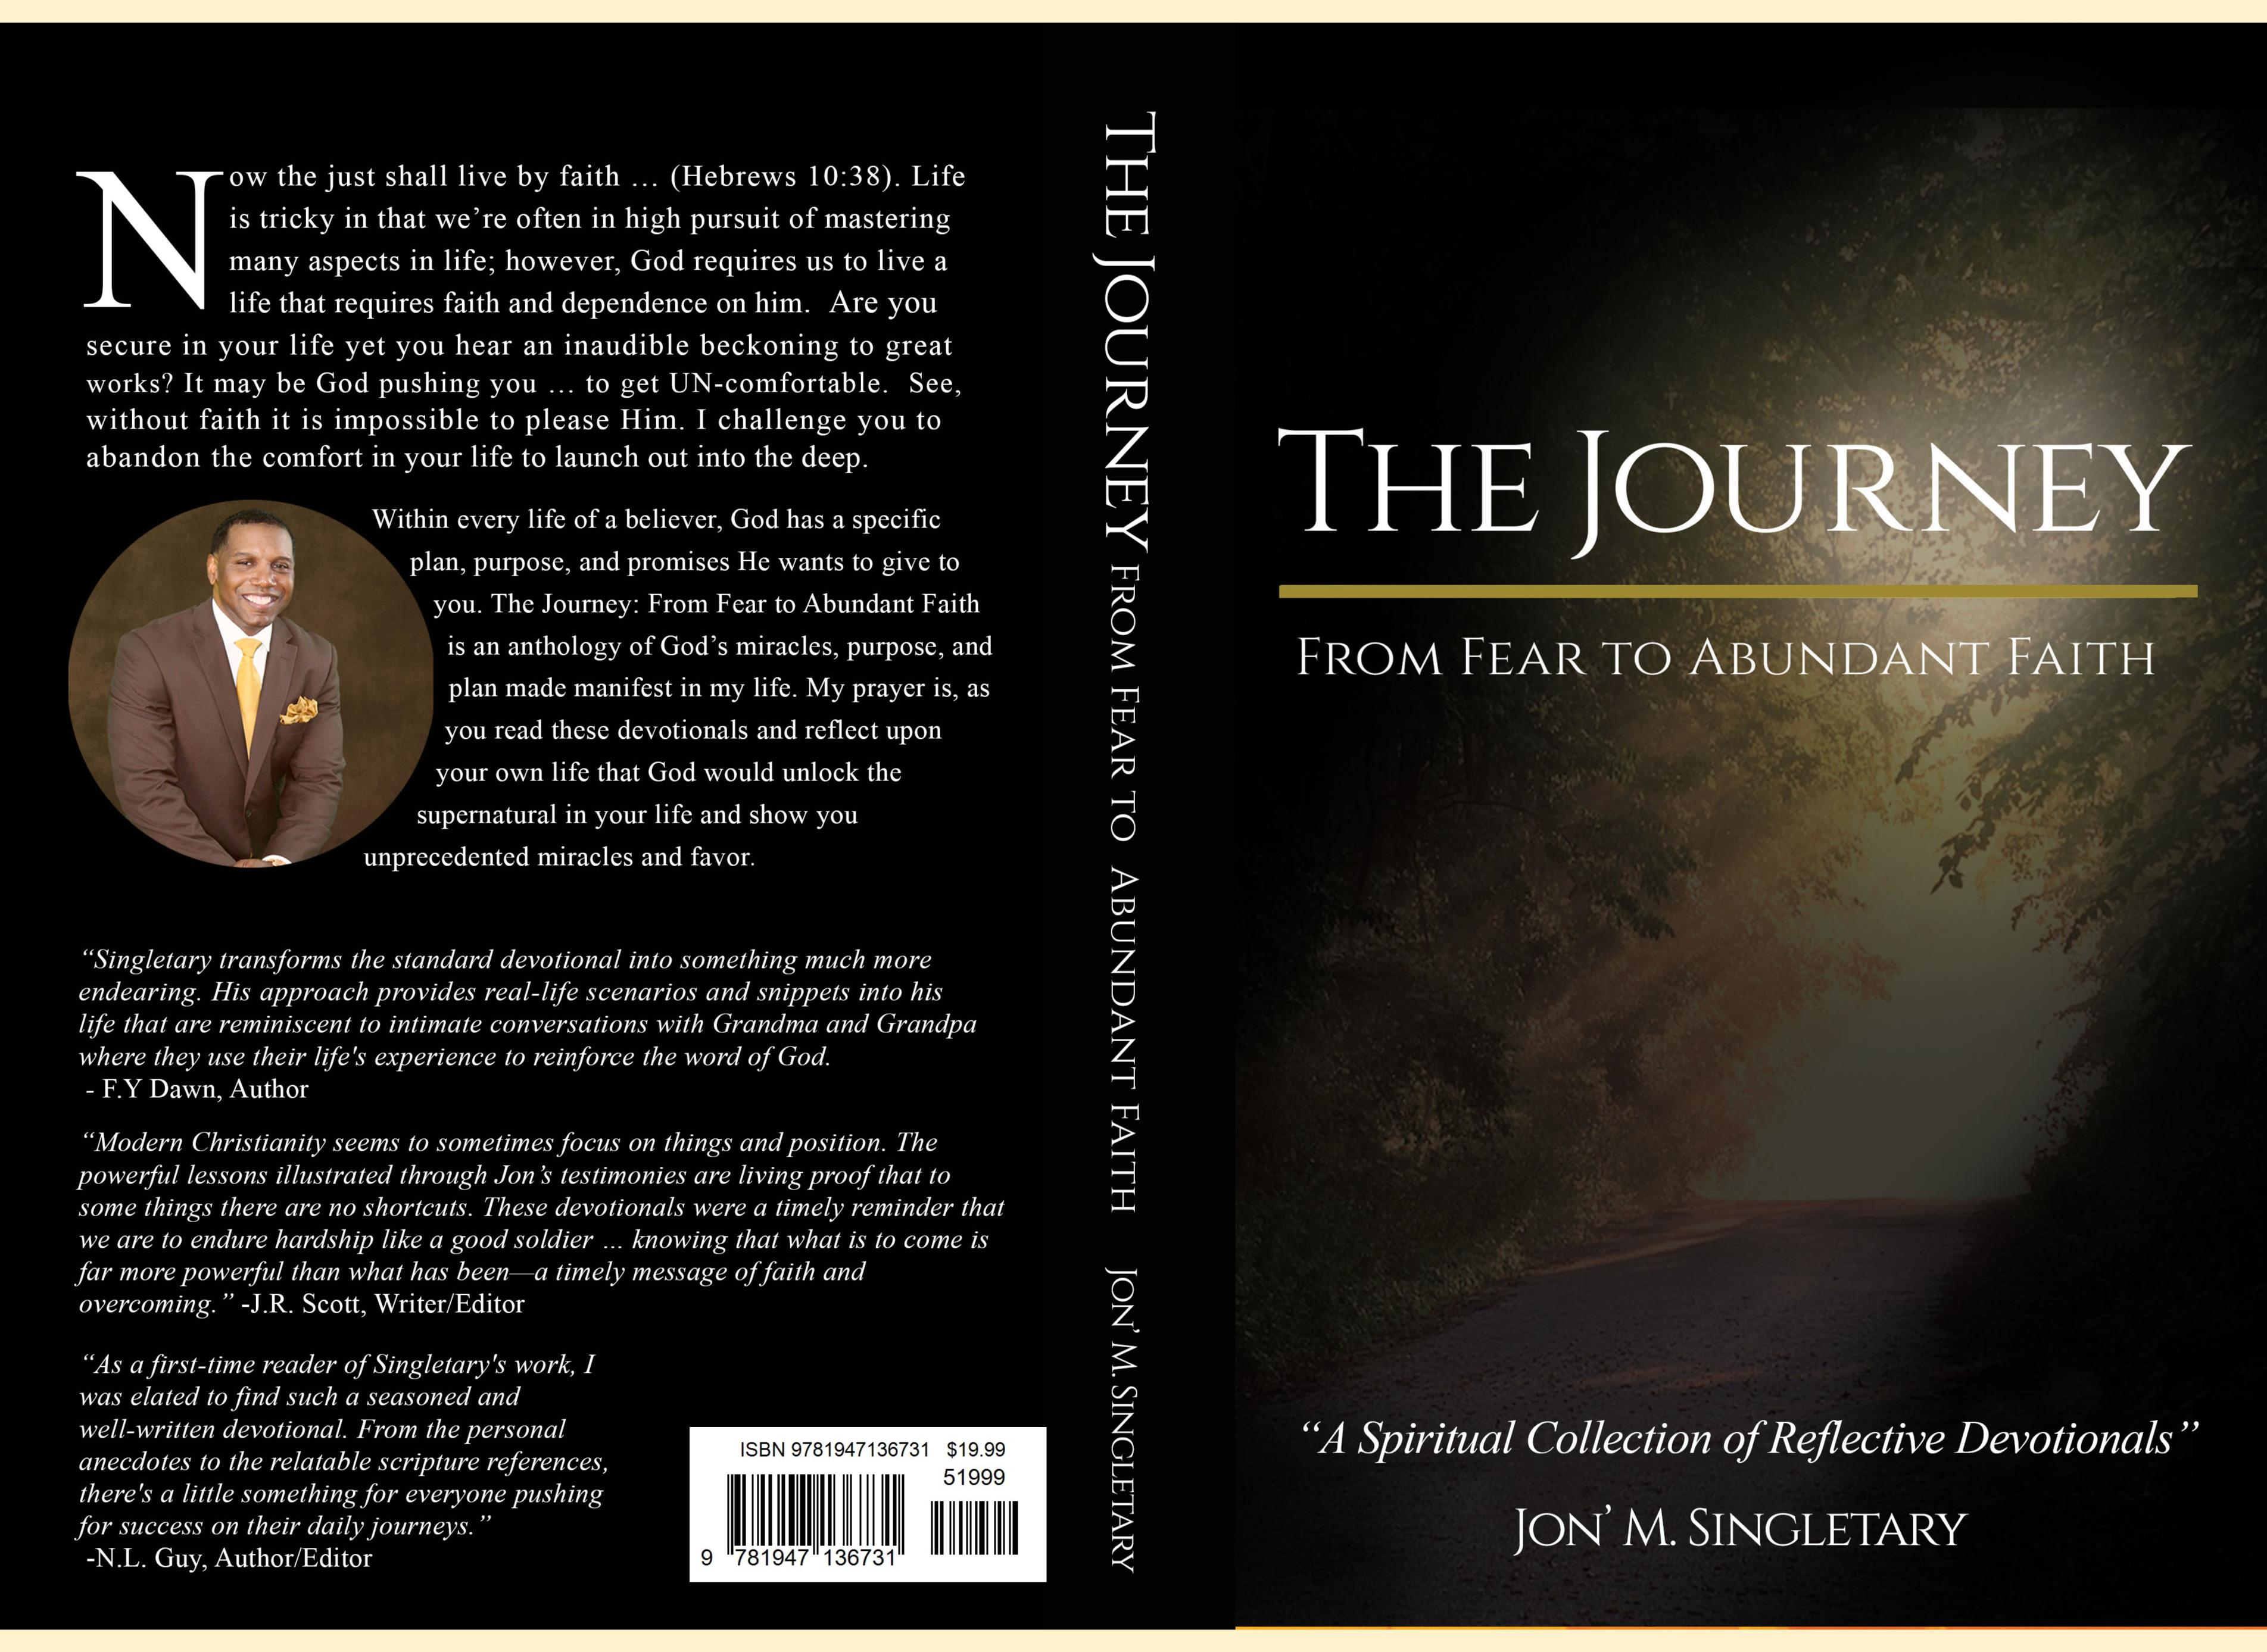 The Journey: From Fear To Abundant Faith cover image